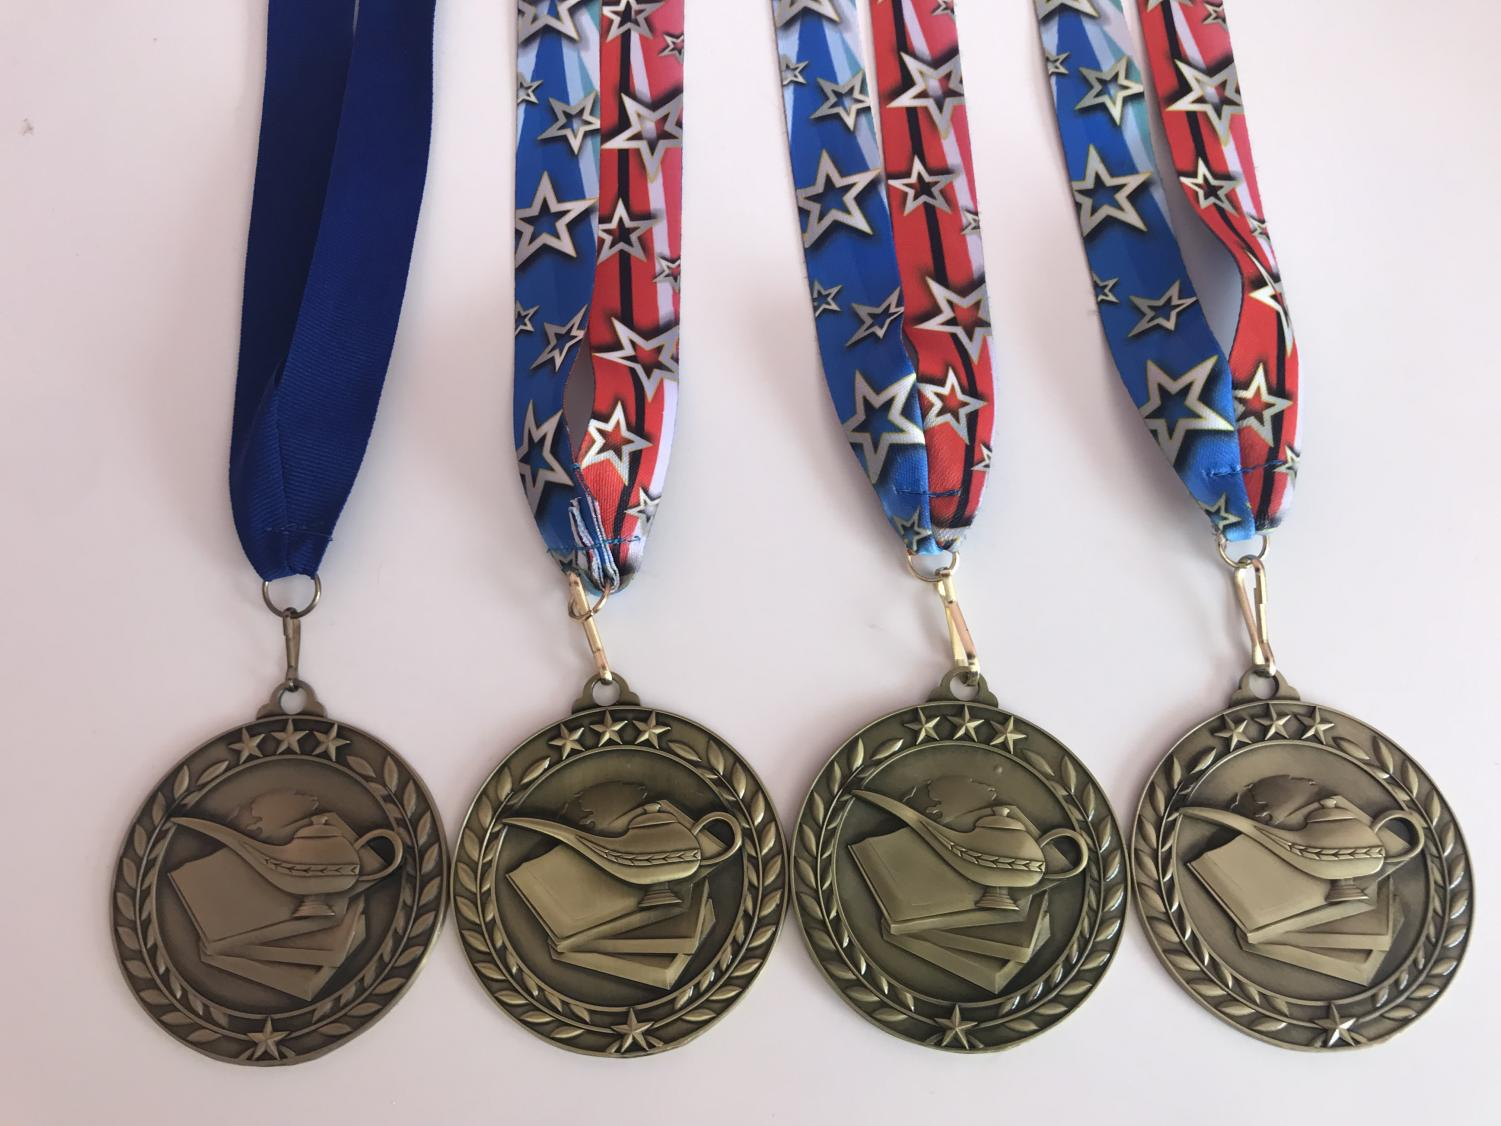 A few of Emily's medals